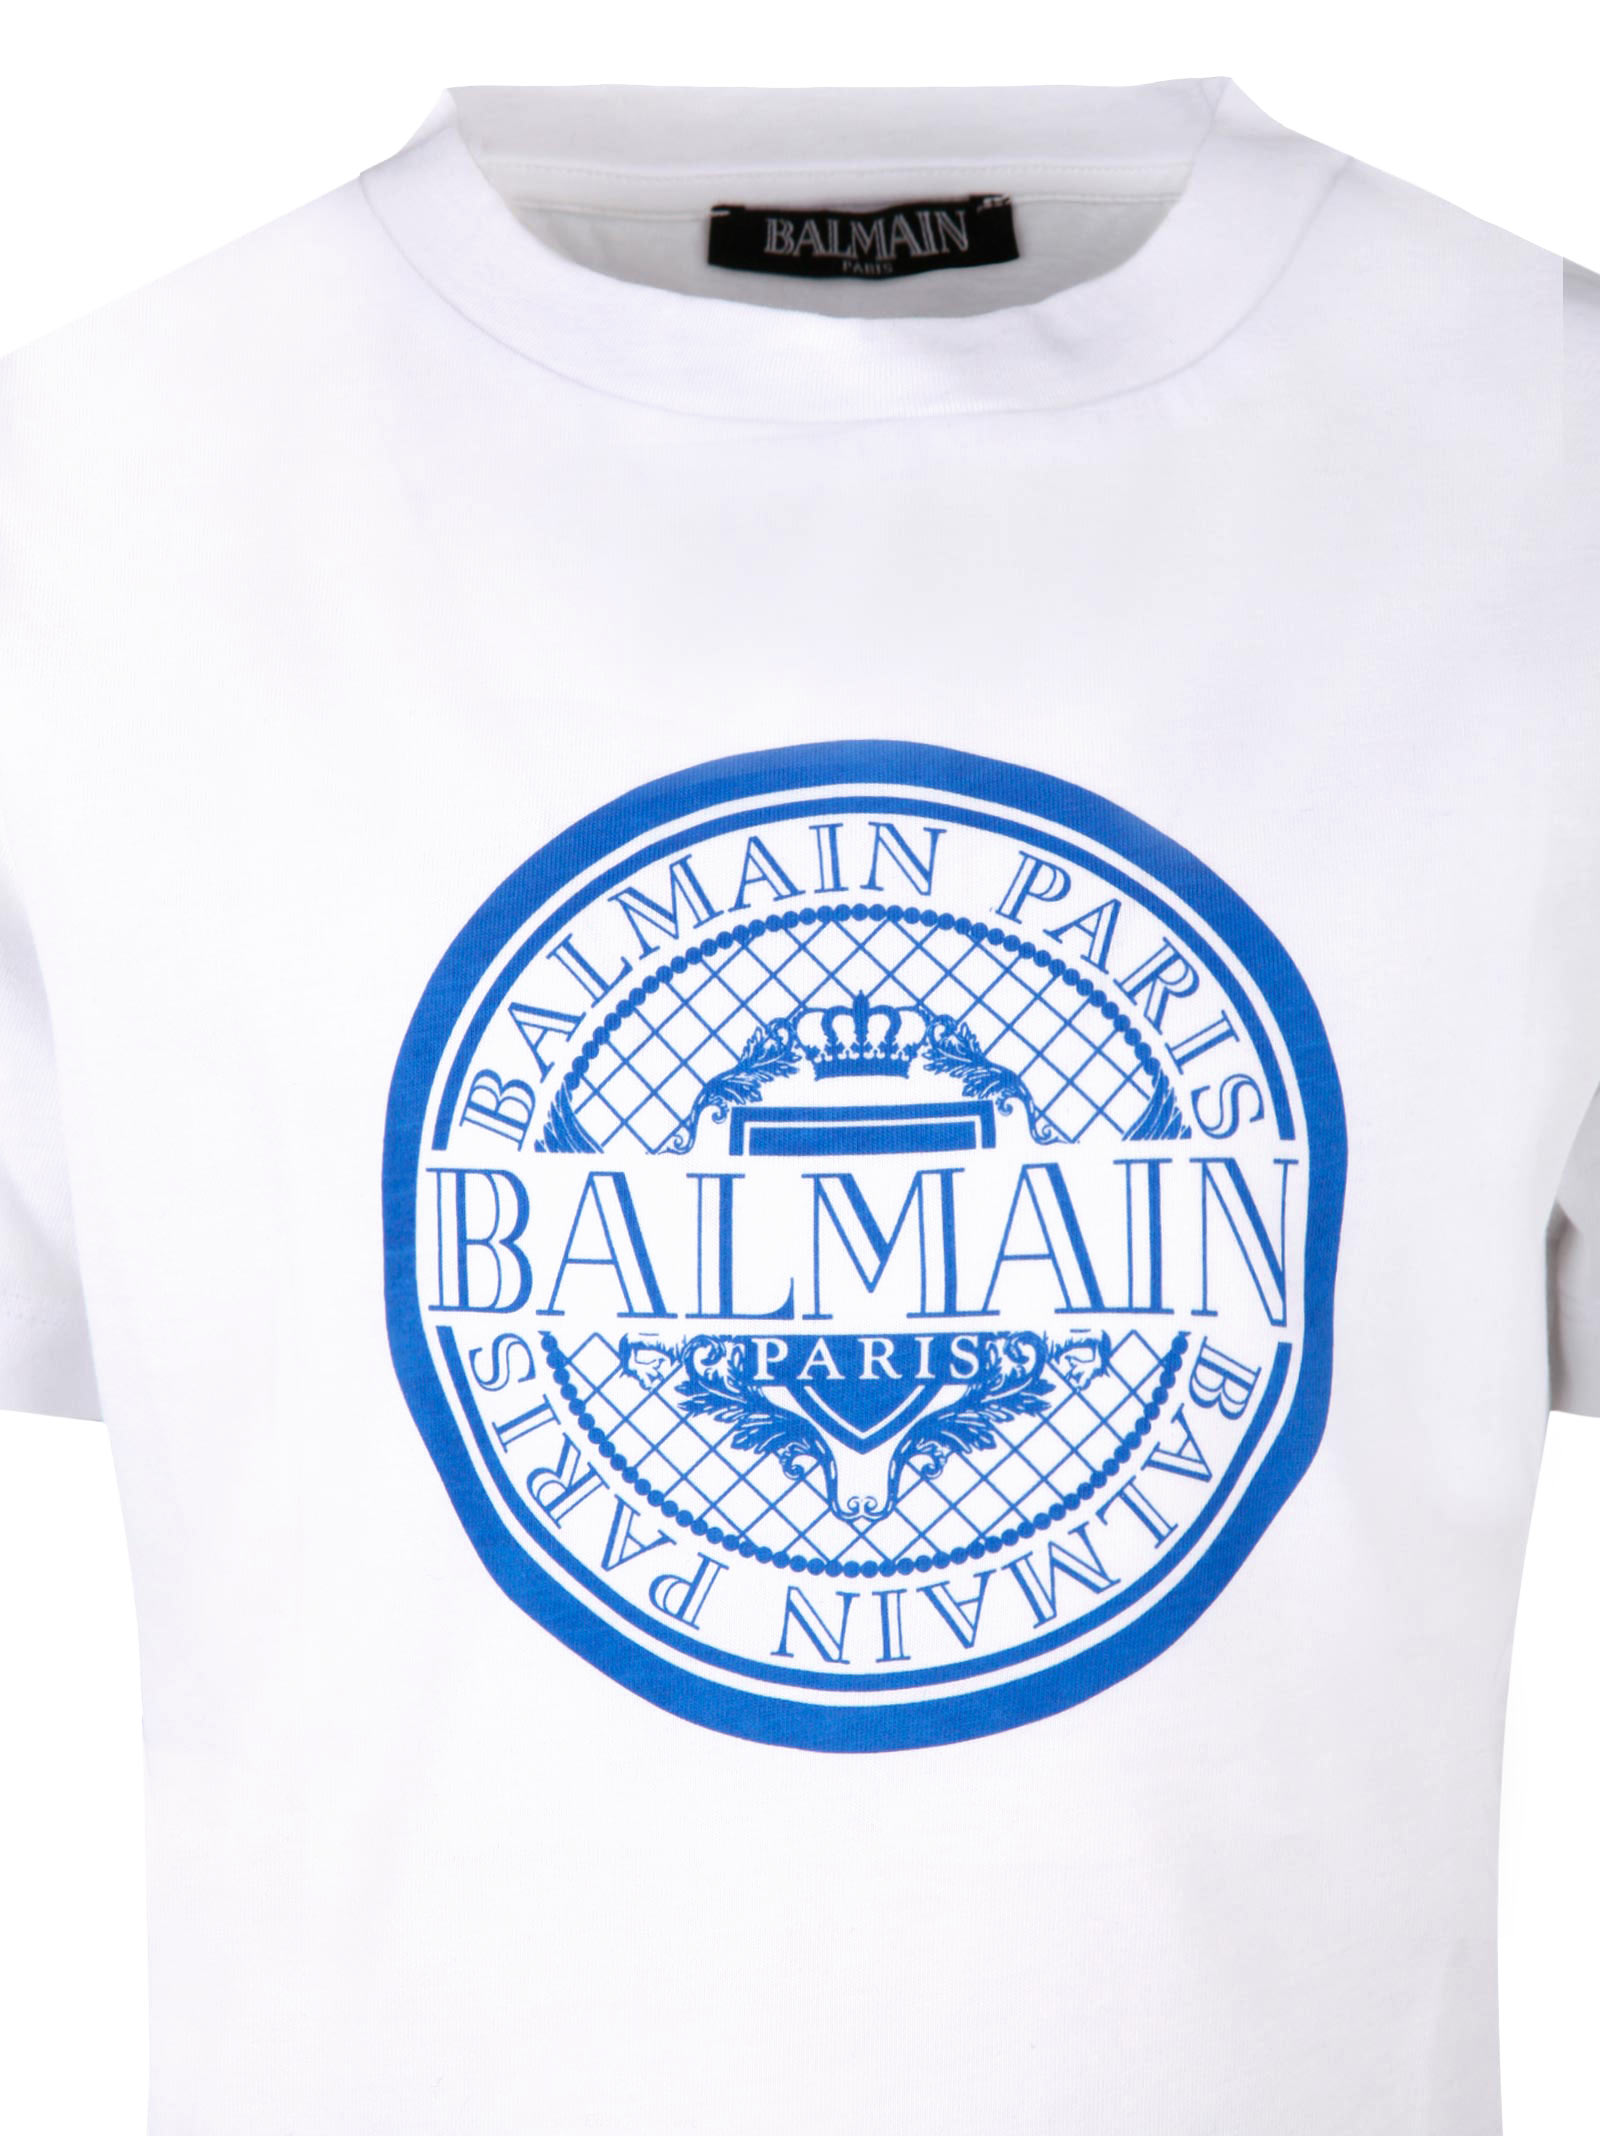 a2159b9c3 Balmain Paris Kids t-shirt - BALMAIN PARIS KIDS - Michele Franzese Moda